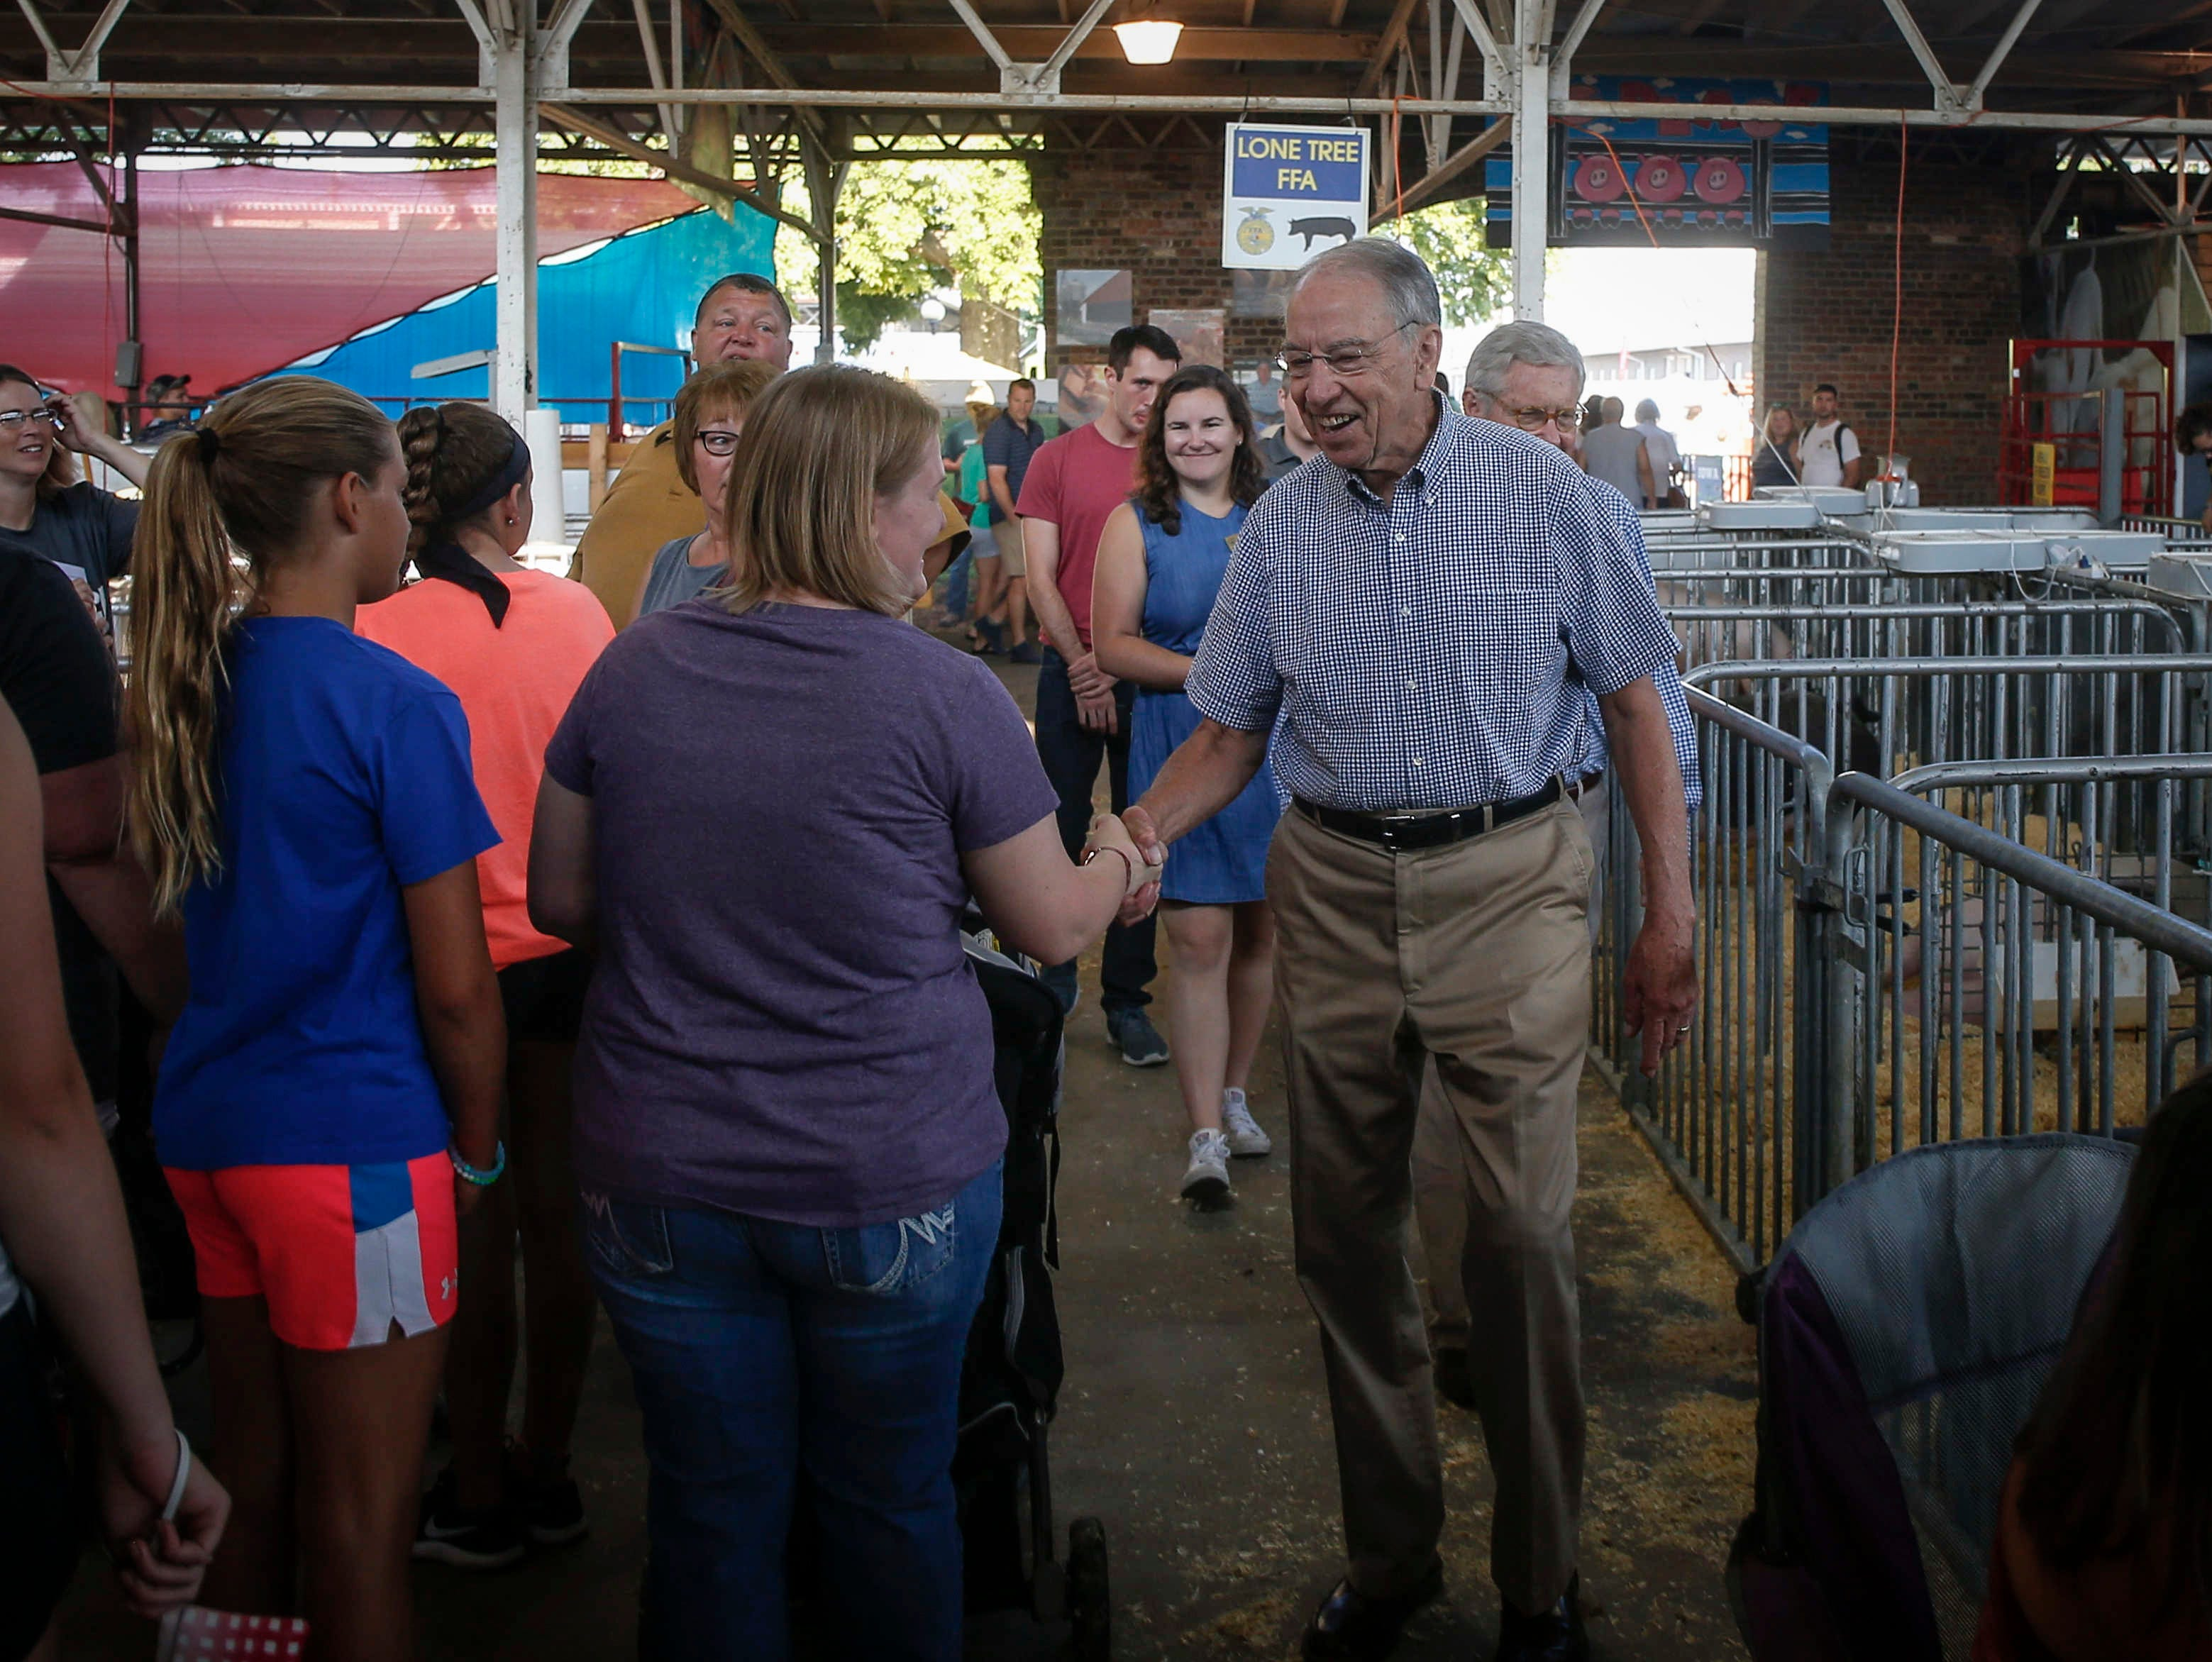 U.S. Sen. Charles Grassley (R-Iowa) greets supporters in the swine barn on Friday, Aug. 10, 2018, at the Iowa State Fair in Des Moines.